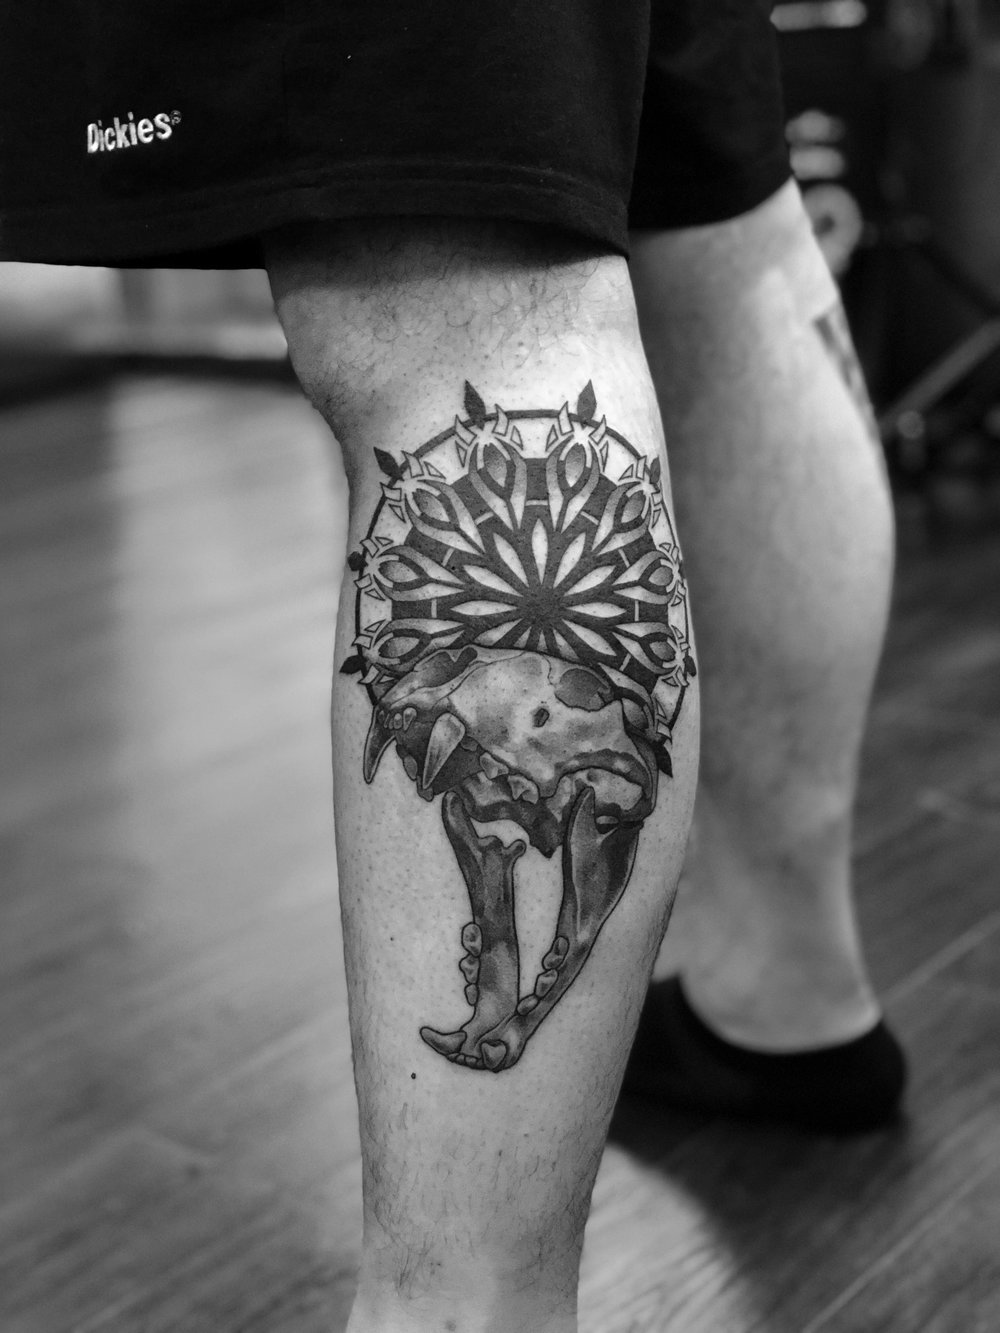 2018-fridays-tattoo-hong-kong-felix-lion-skull-geometry-illustration.JPG